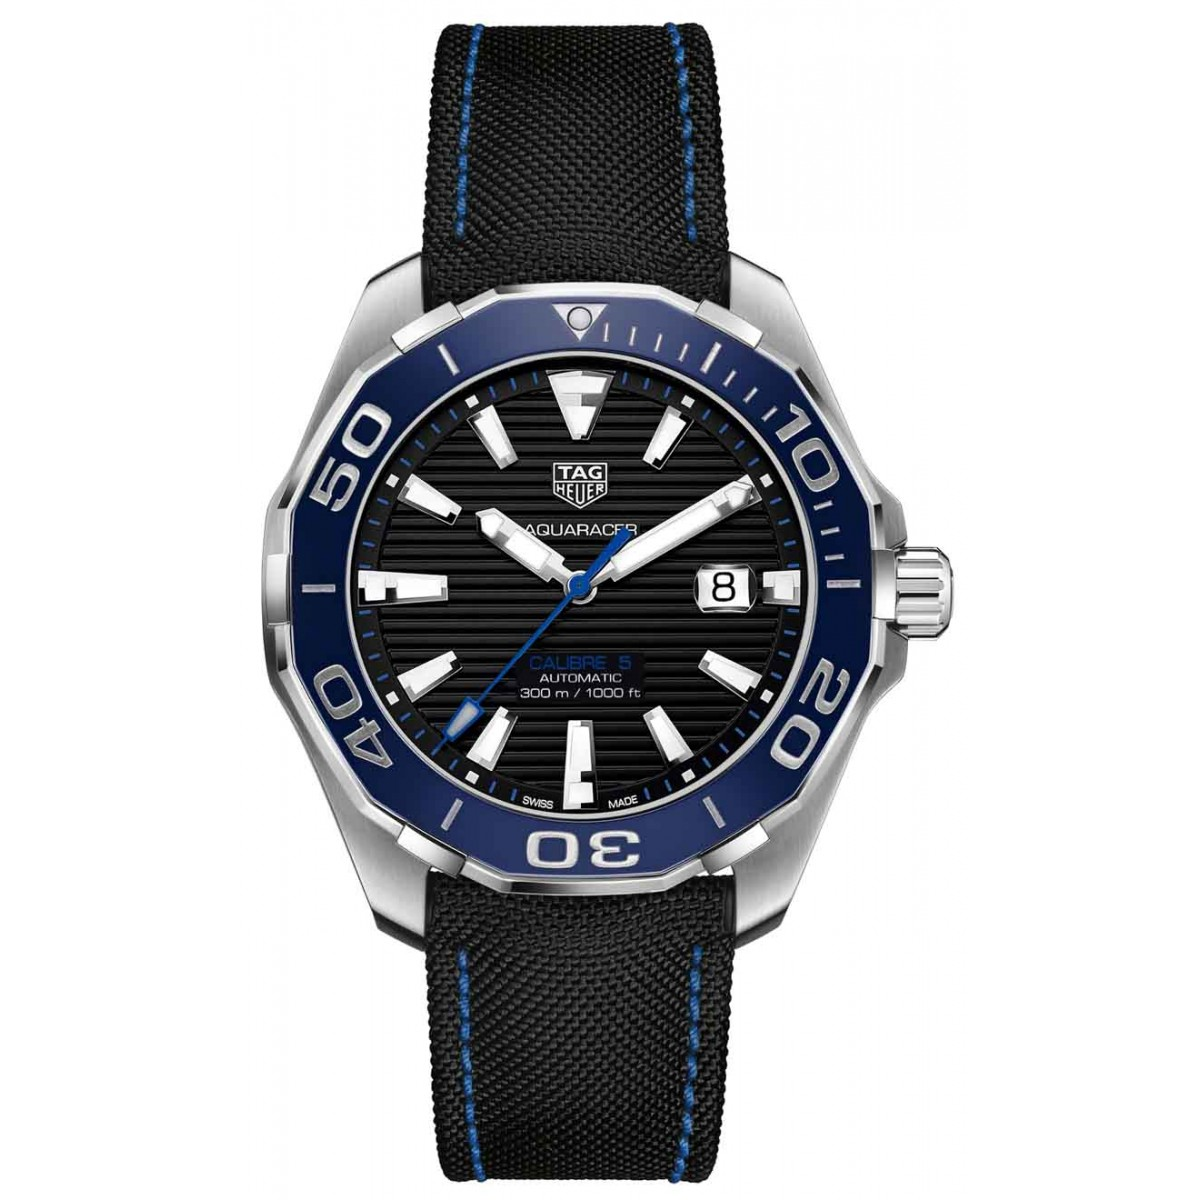 TAG HEUER AQUARACER Calibre 5 Automatic Watch 300 M - 43 mm - ∅43 mm Ceramic Bezel, Esfera negra, caucho